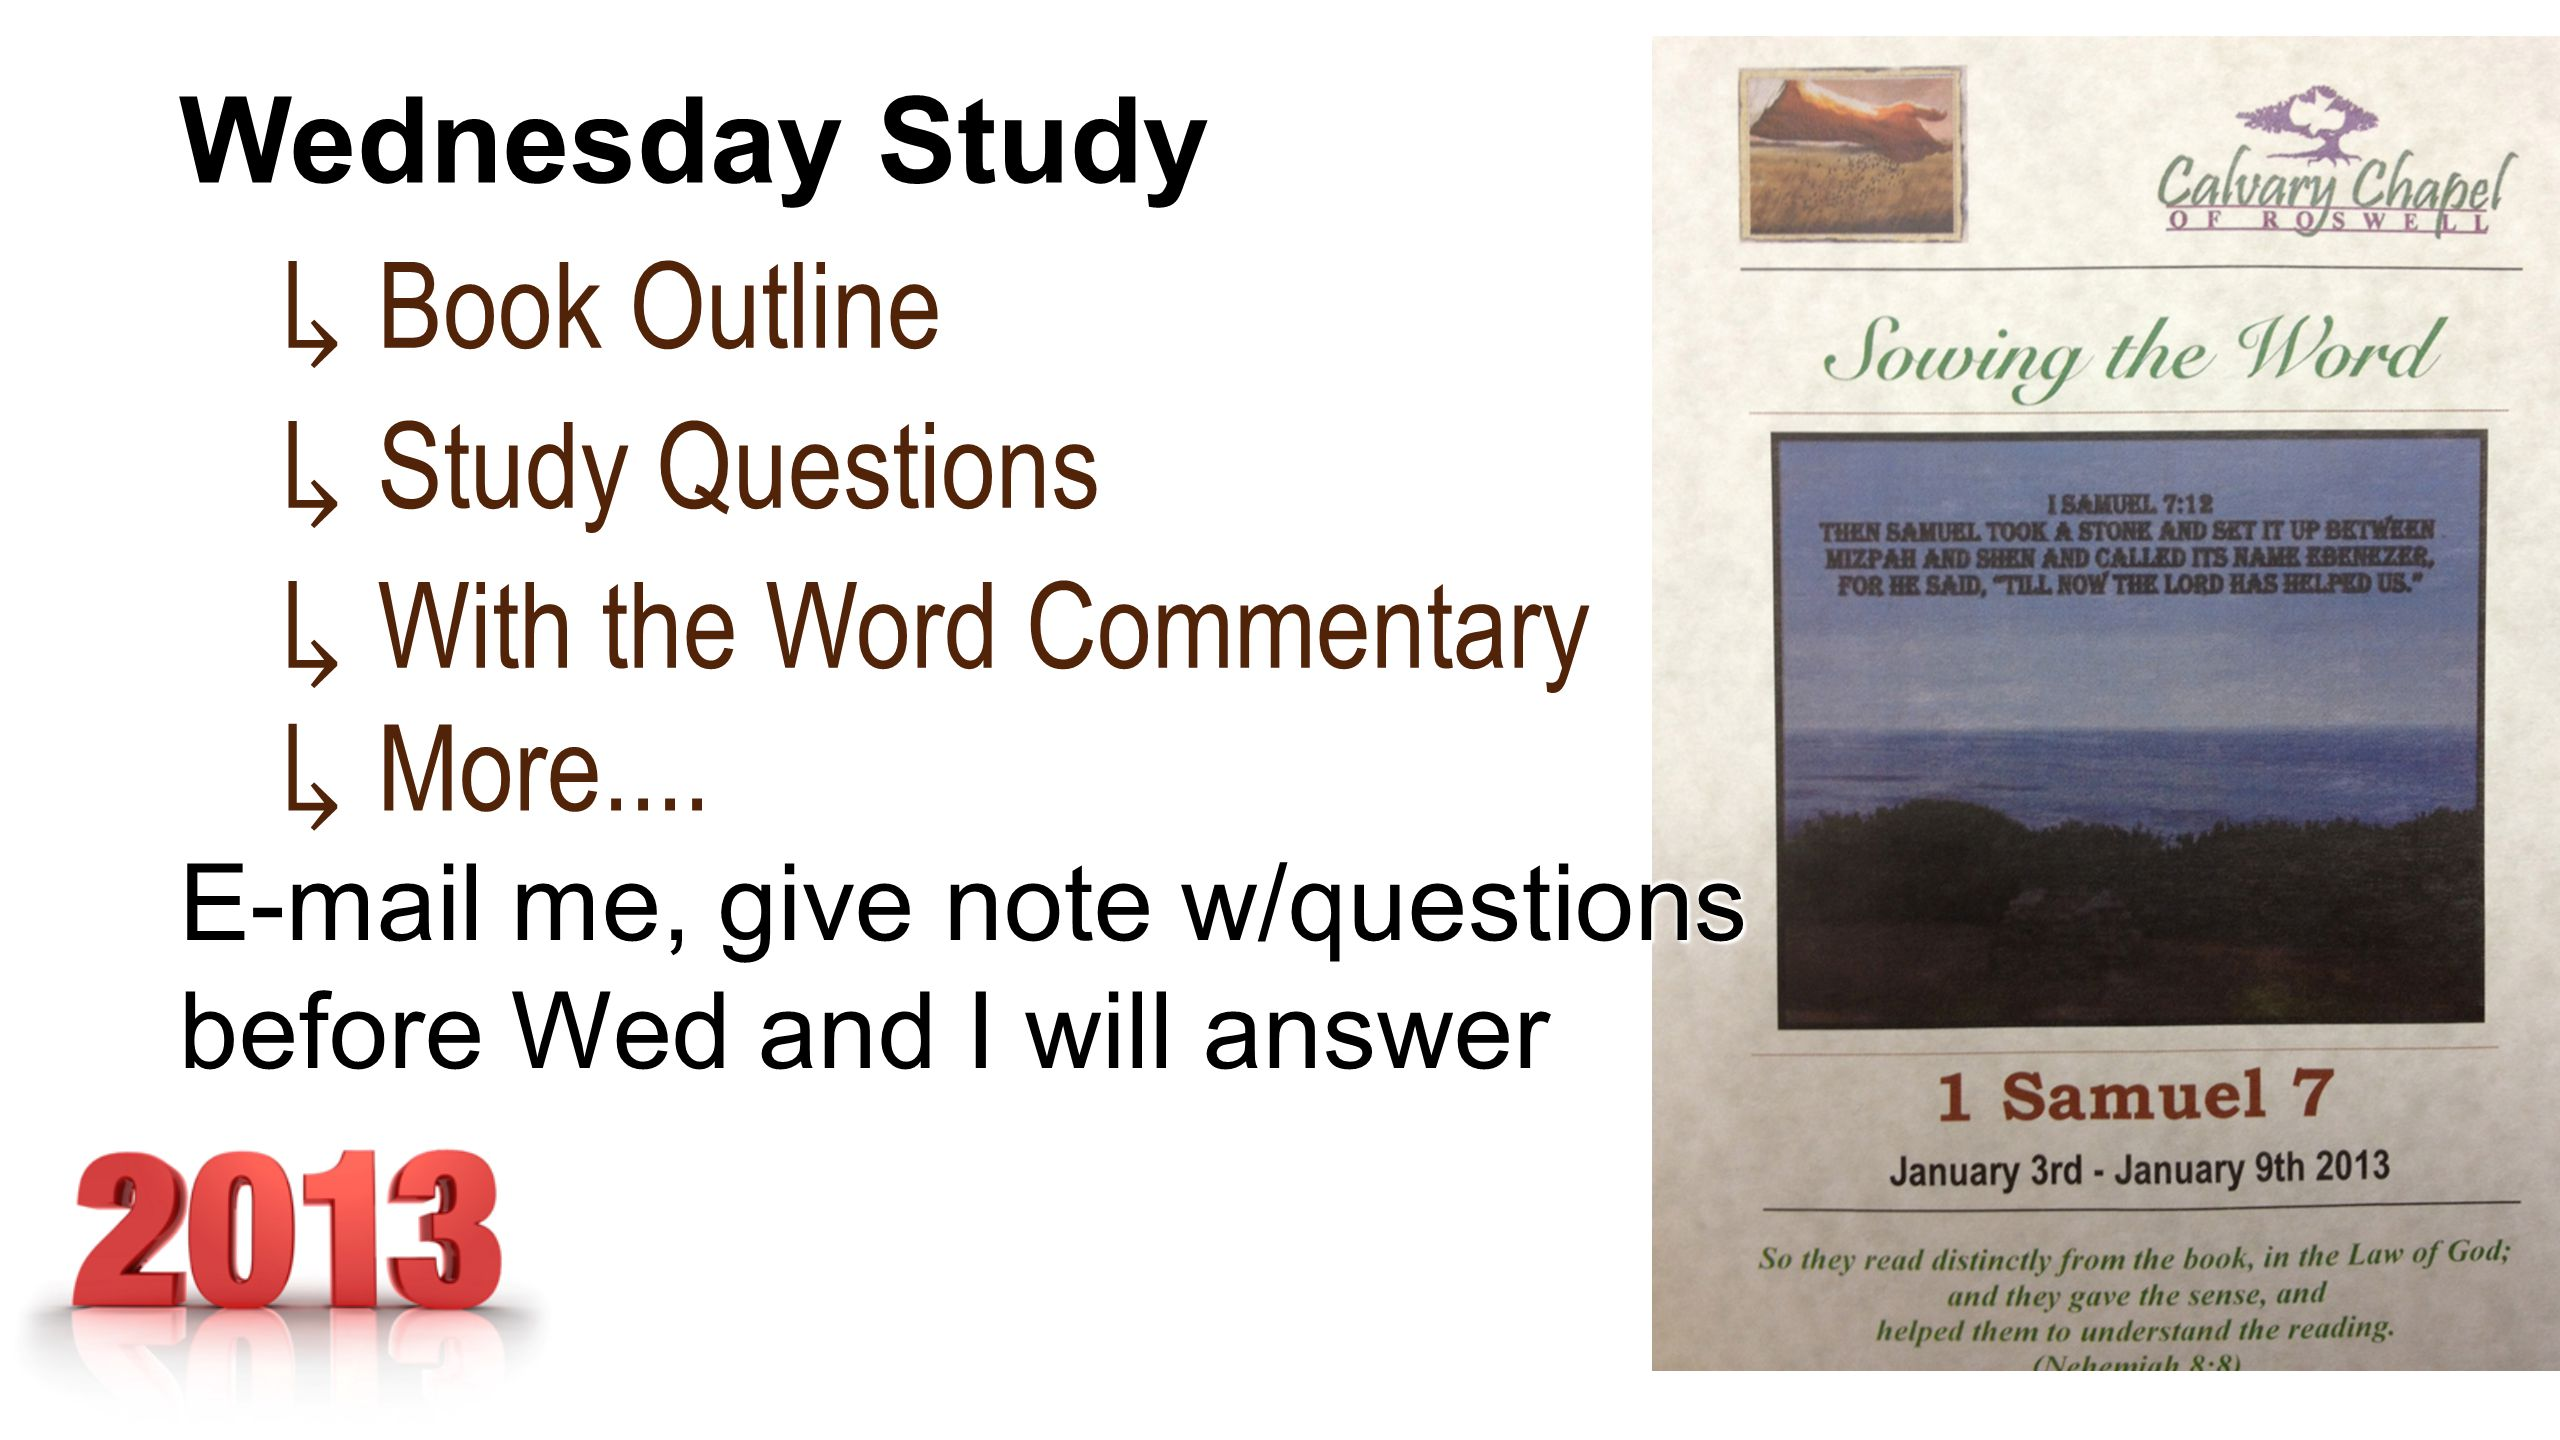 ↳ Book Outline ↳ Study Questions ↳ With the Word Commentary ↳ More....